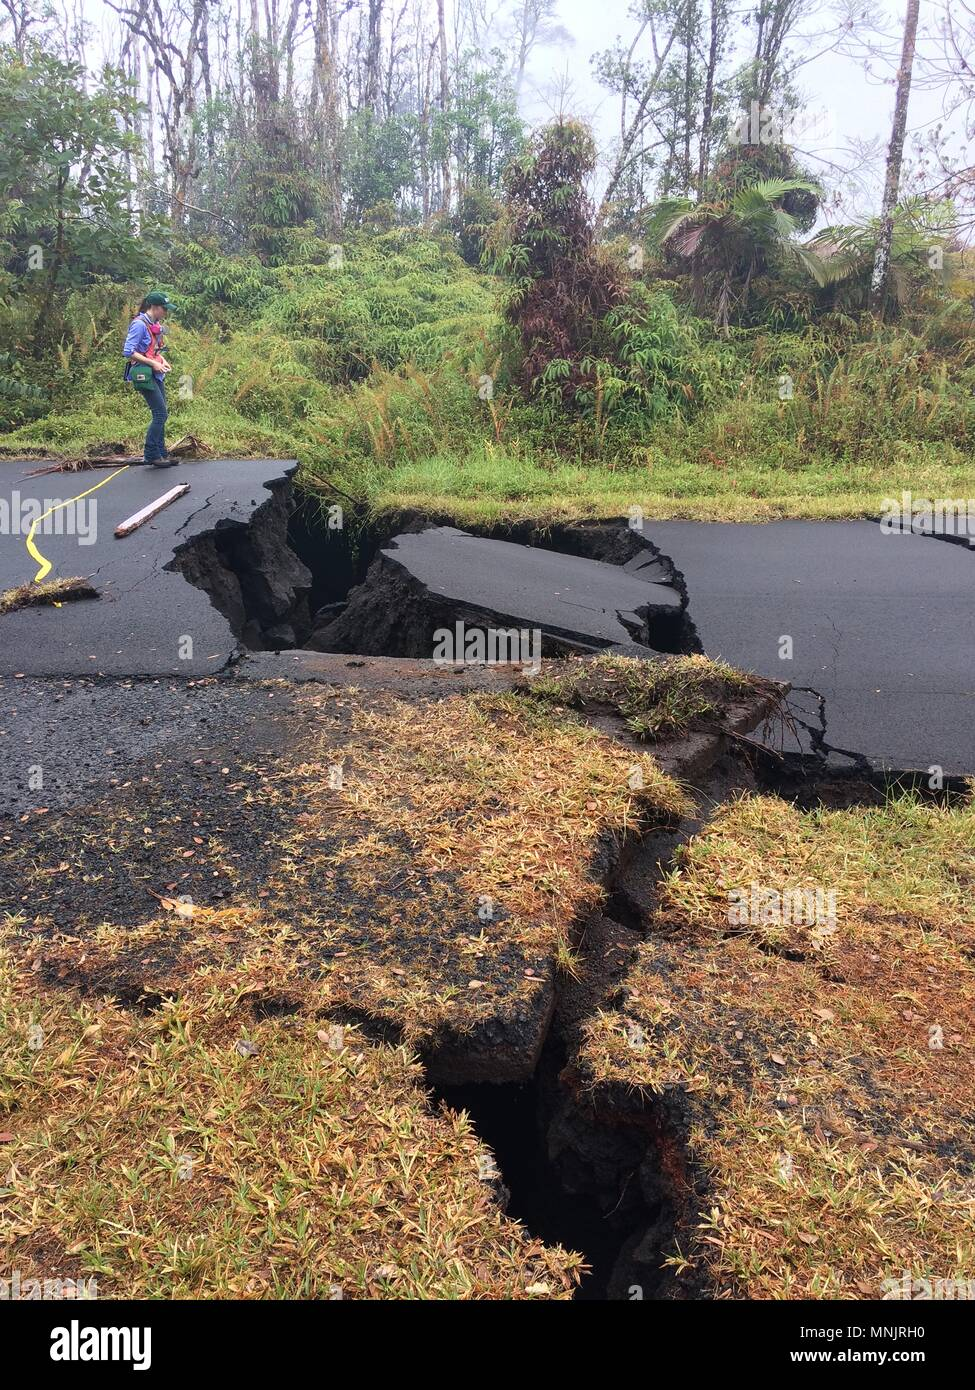 A USGS scientist views ground cracks along Nohea Street in Leilani Estates caused by the eruption of the Kilauea volcano May 17, 2018 in Pahoa, Hawaii. Stock Photo